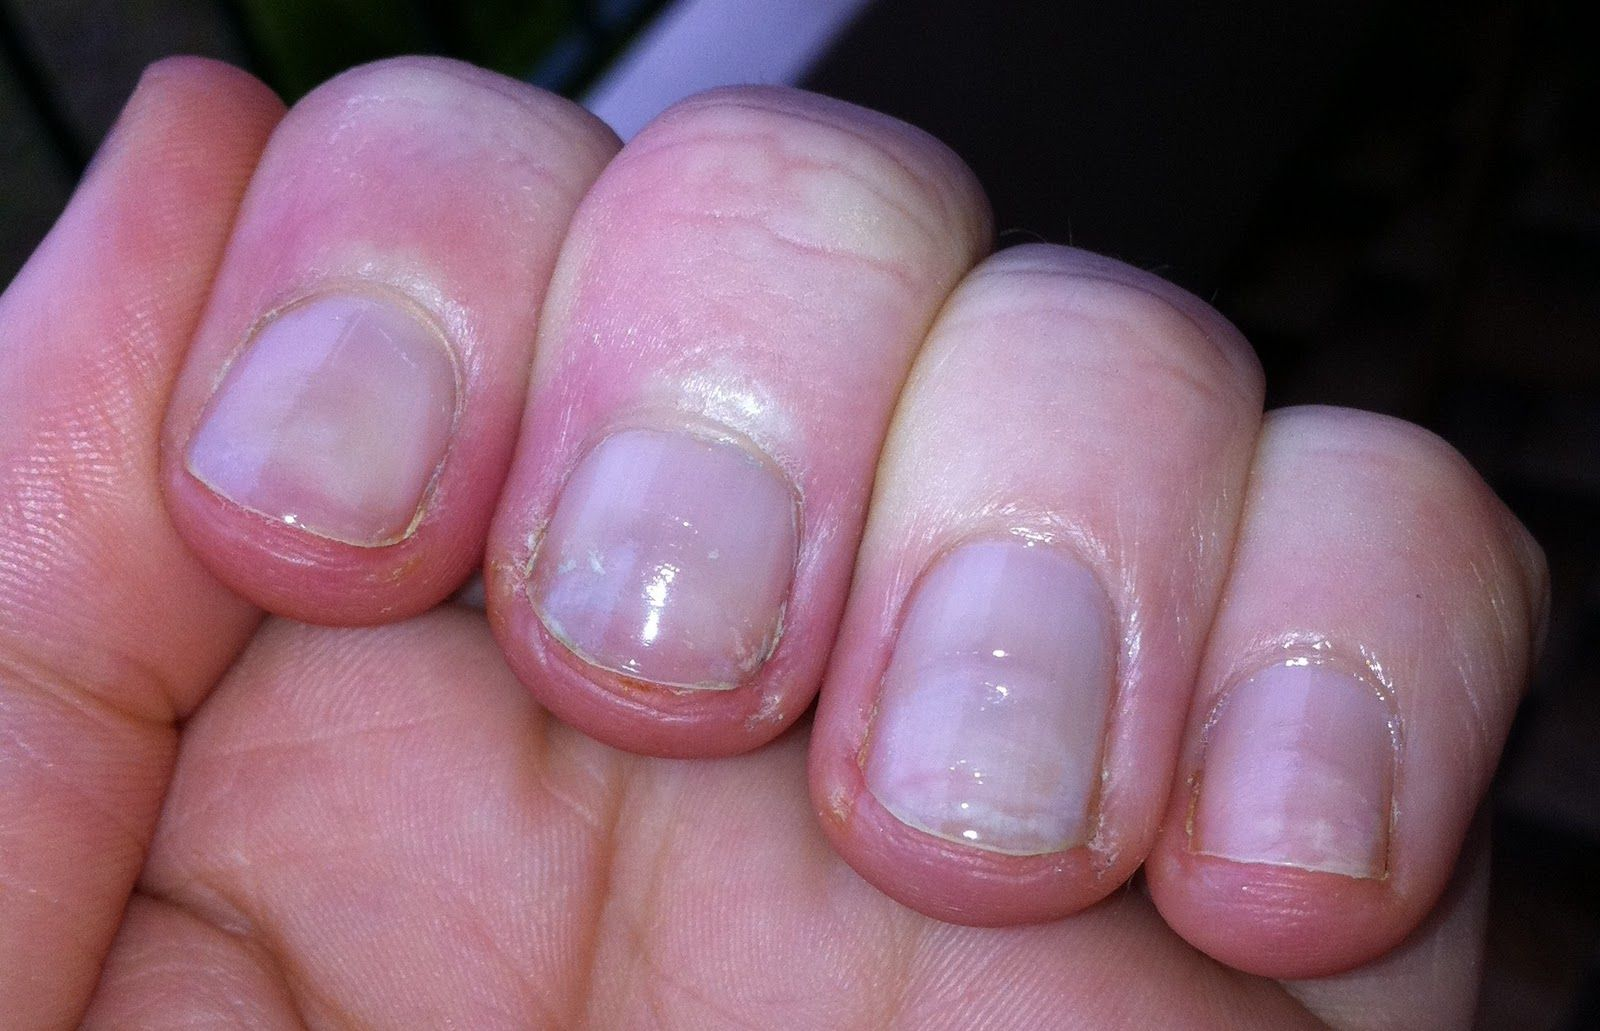 Thin Flimsy Nails After Acrylics Google Search